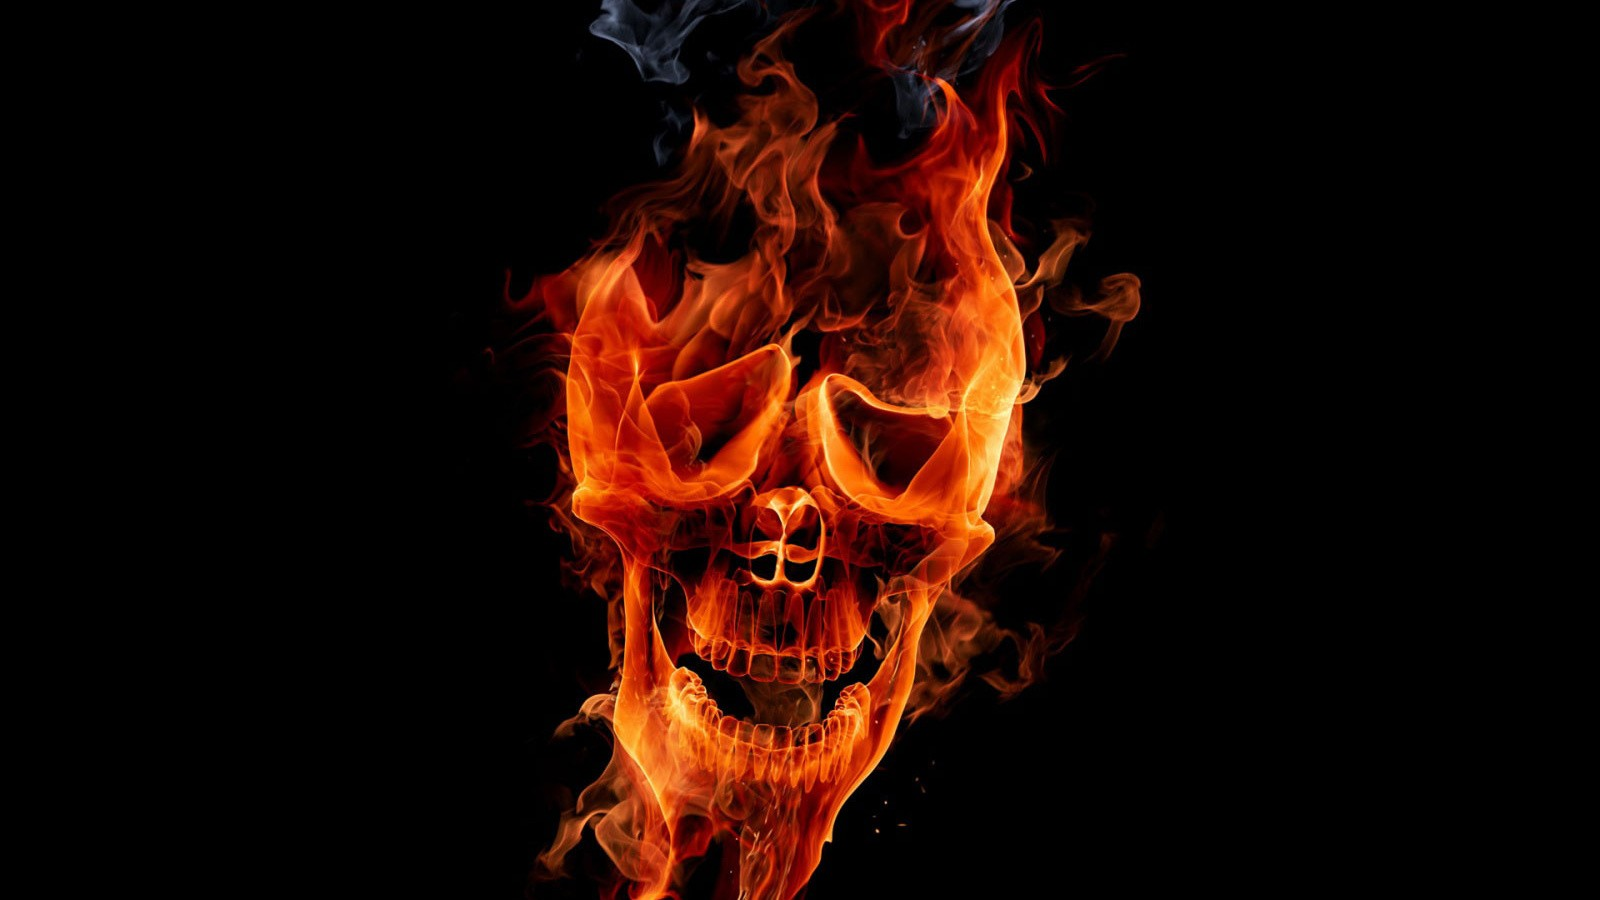 Digital Skull Wallpaper Flames Skulls Fire Digital Art